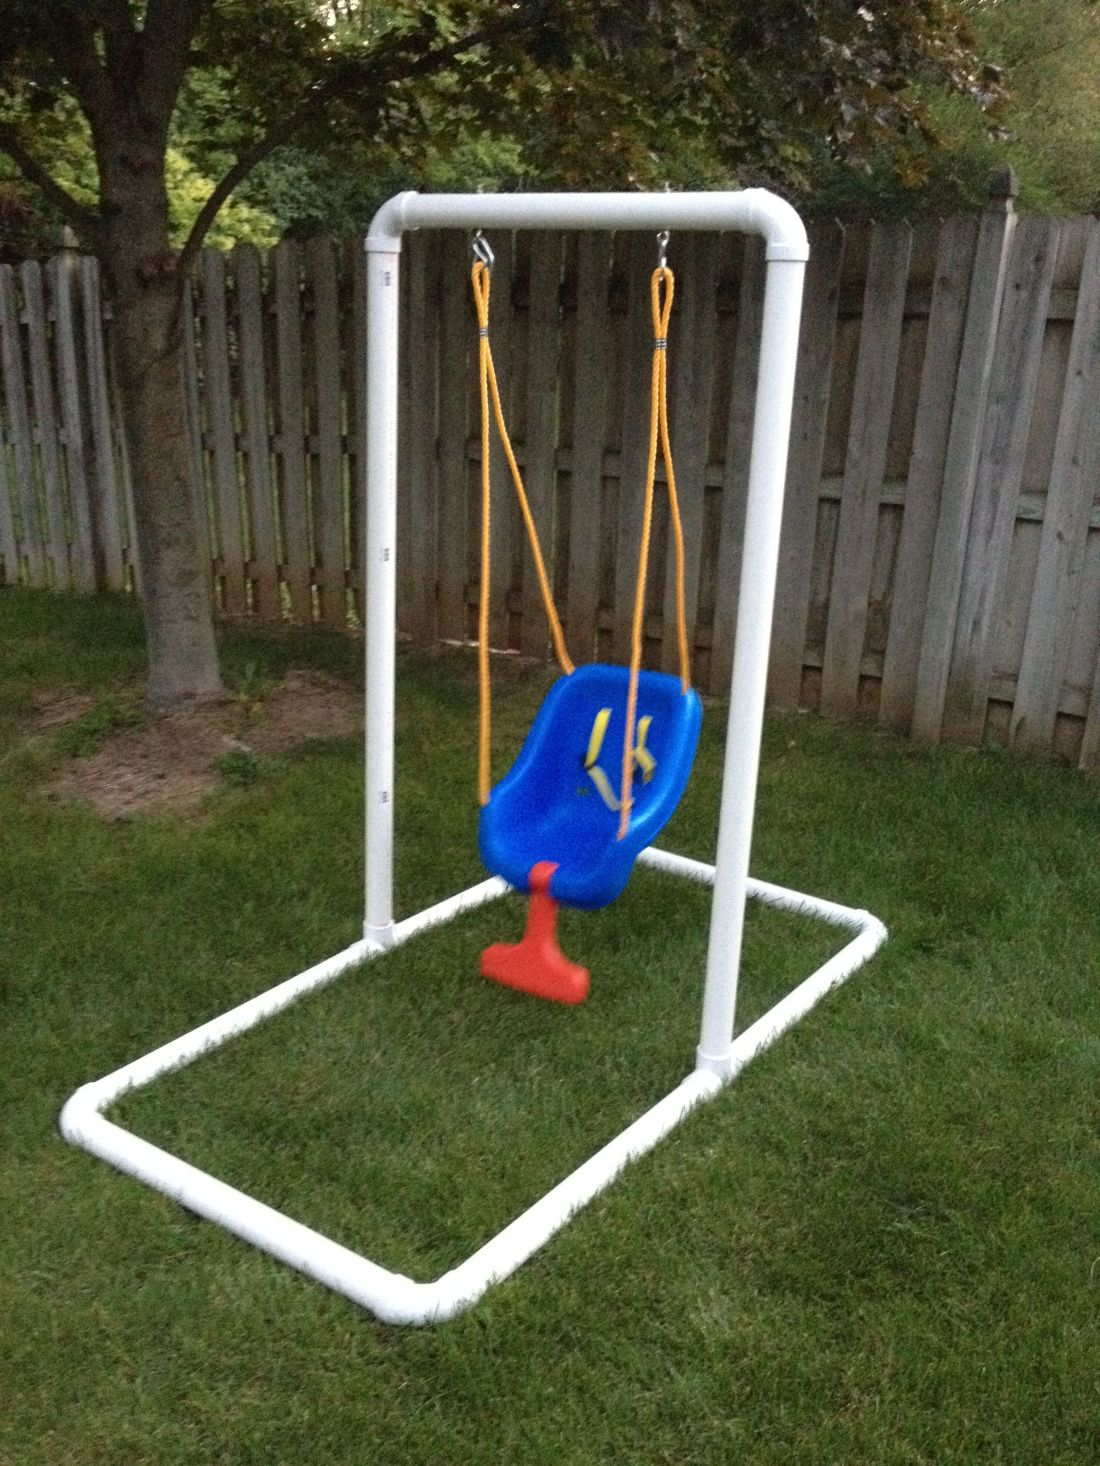 Homemade infant swing stand 6500 what youll need